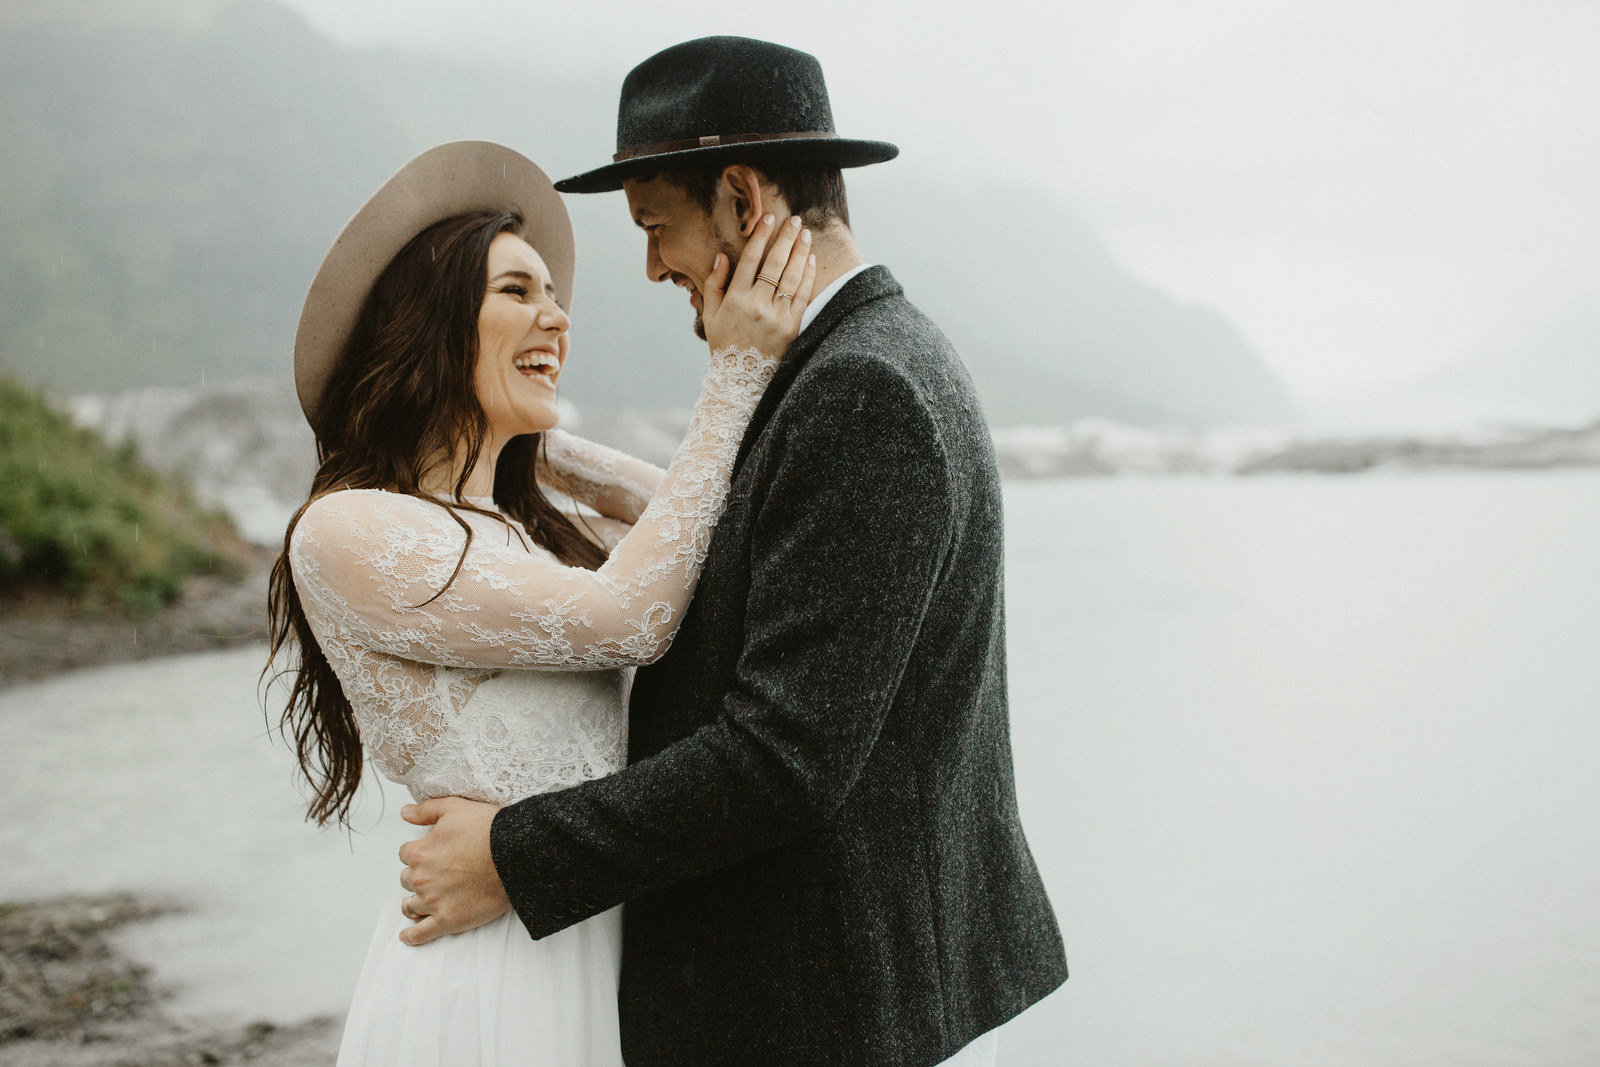 athena-and-camron-alaska-elopement-wedding-inspiration-india-earl-athena-grace-glacier-lagoon-wedding94